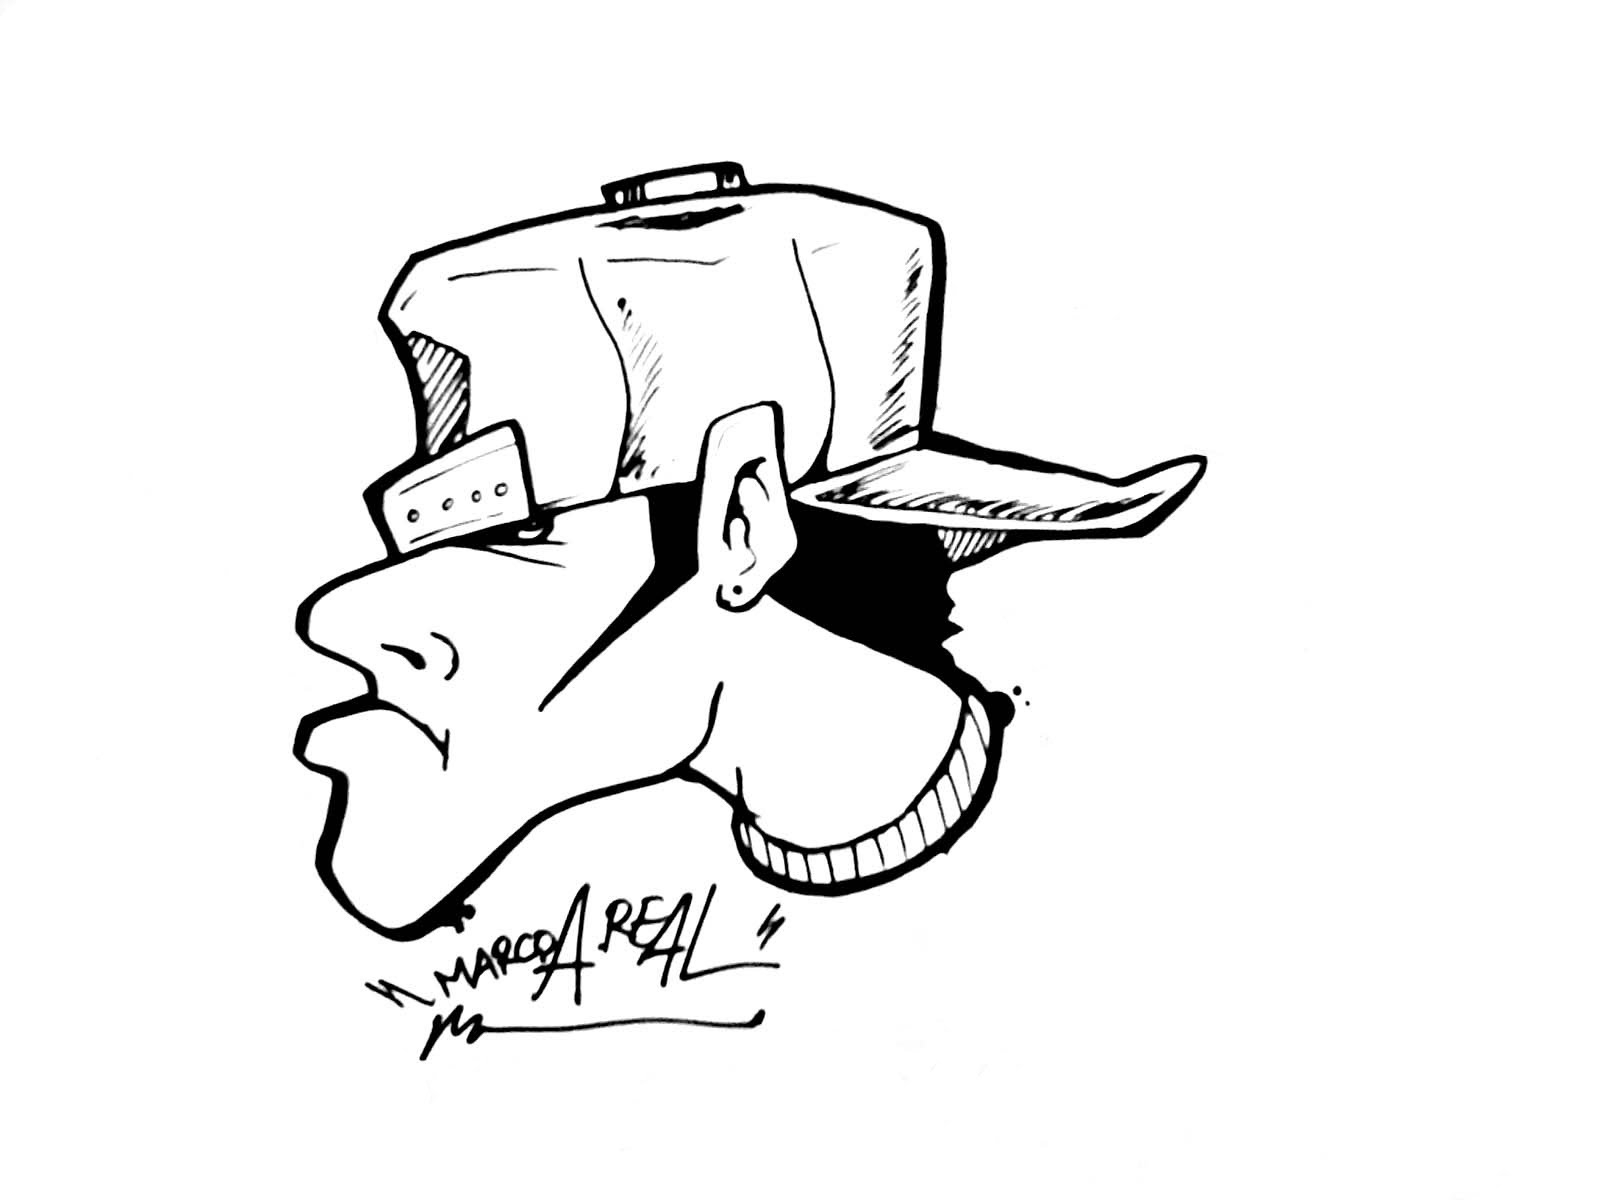 happy birthday drawings step by step ; happy-birthday-drawing-graffiti-black-and-white-step-by-step-how-to-draw-a-graffiti-character-youtube